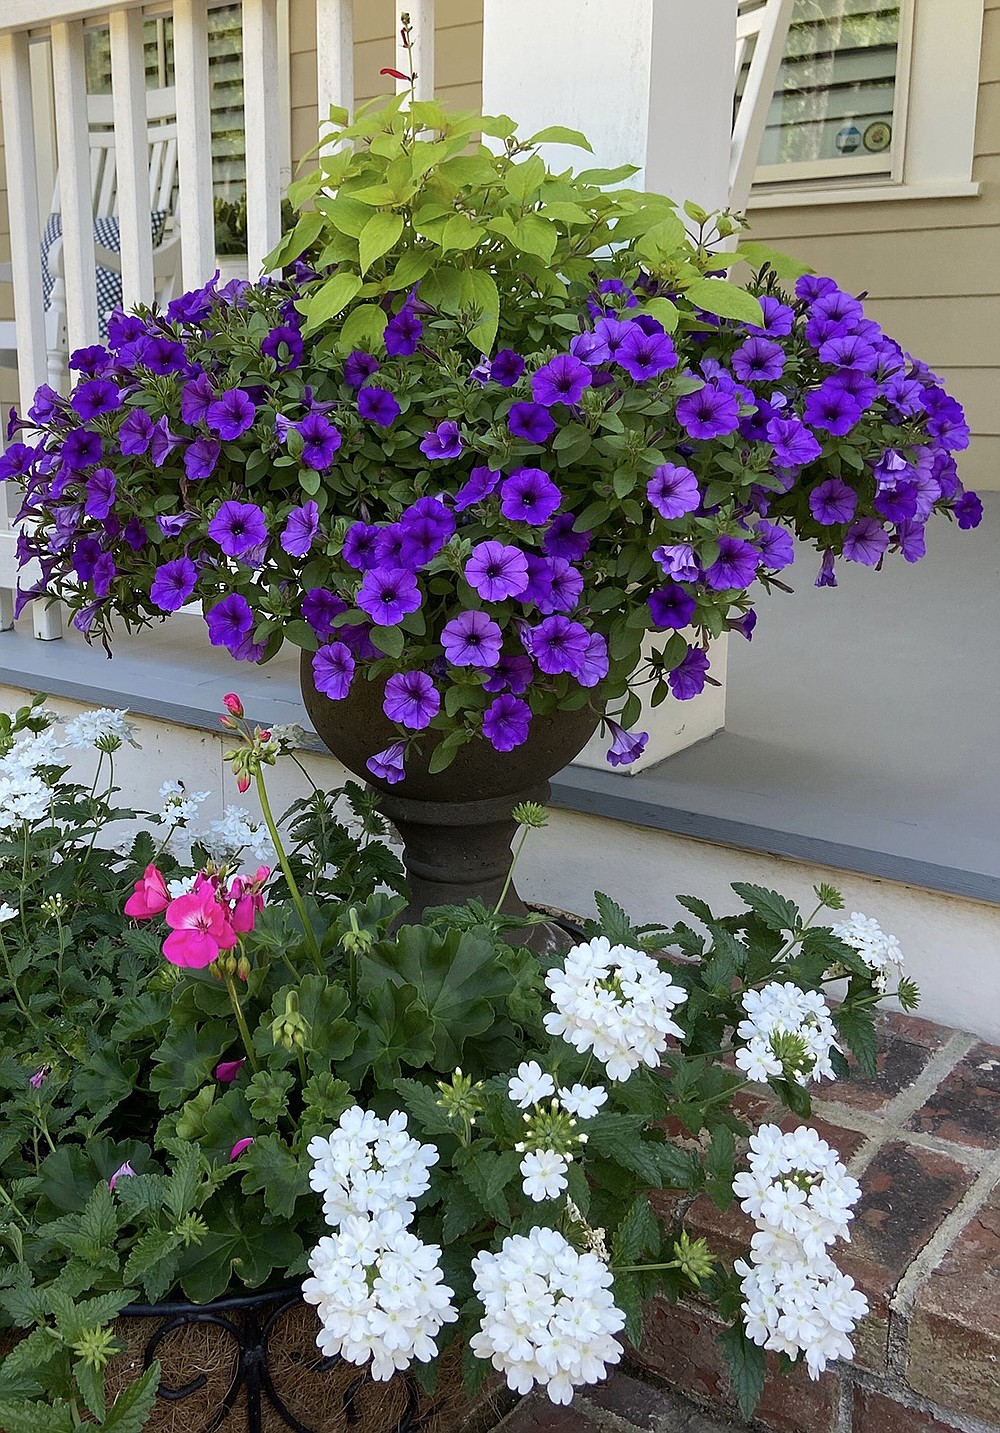 Supertunia Mini Vista Indigo petunia and Rockin Golden Delicious pineapple sage wow with Superbena Whiteout verbena blooming below. (TNS/Norman Winter)